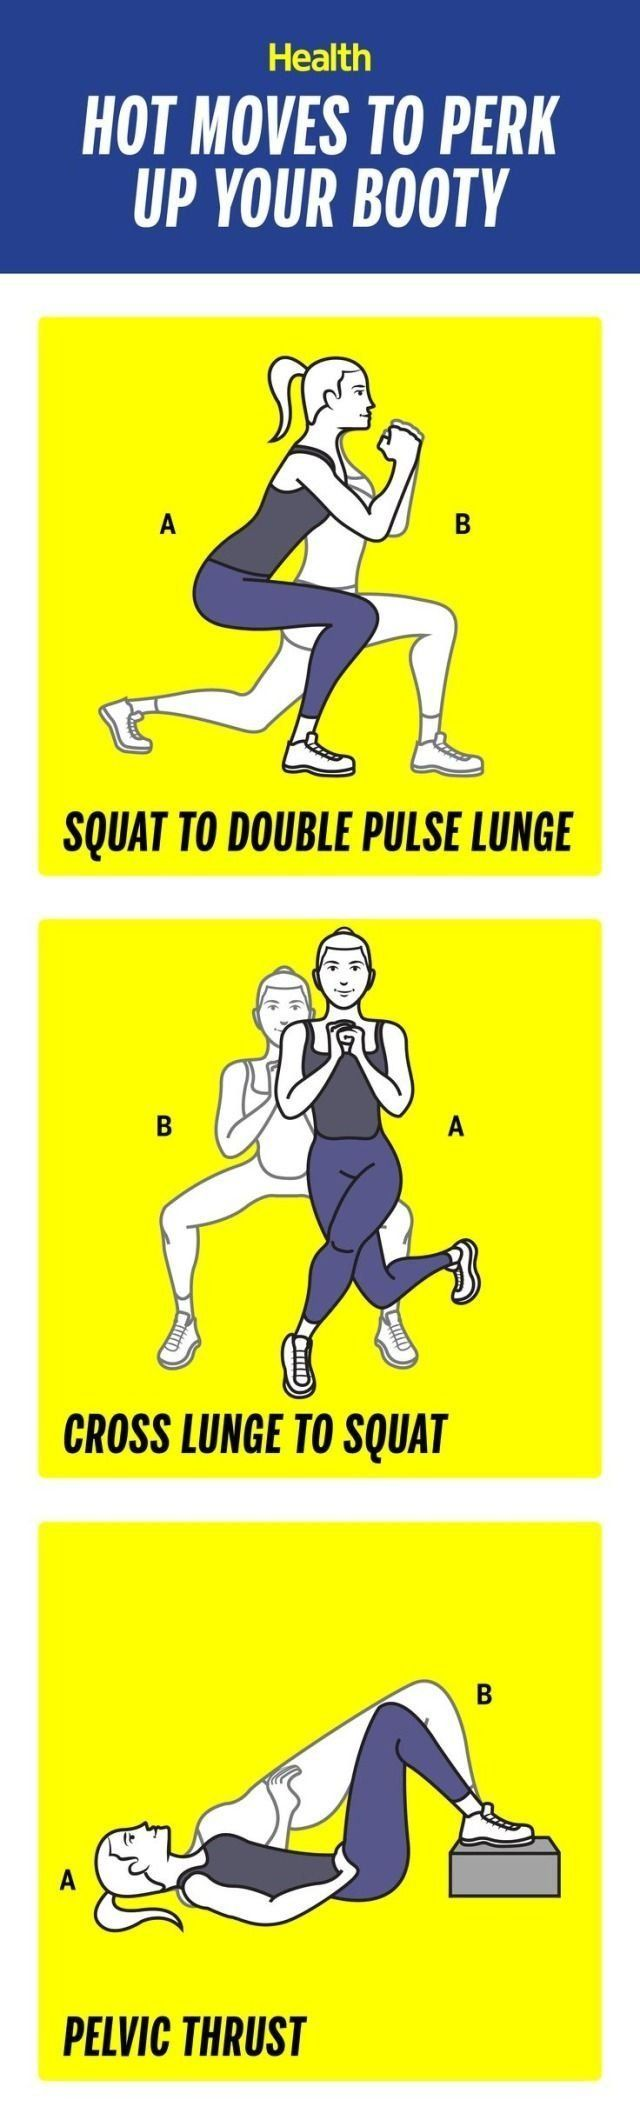 How to perk up your booty in 3 weeks: These moves will help to lift and tighten your butt in no time! | Health.com